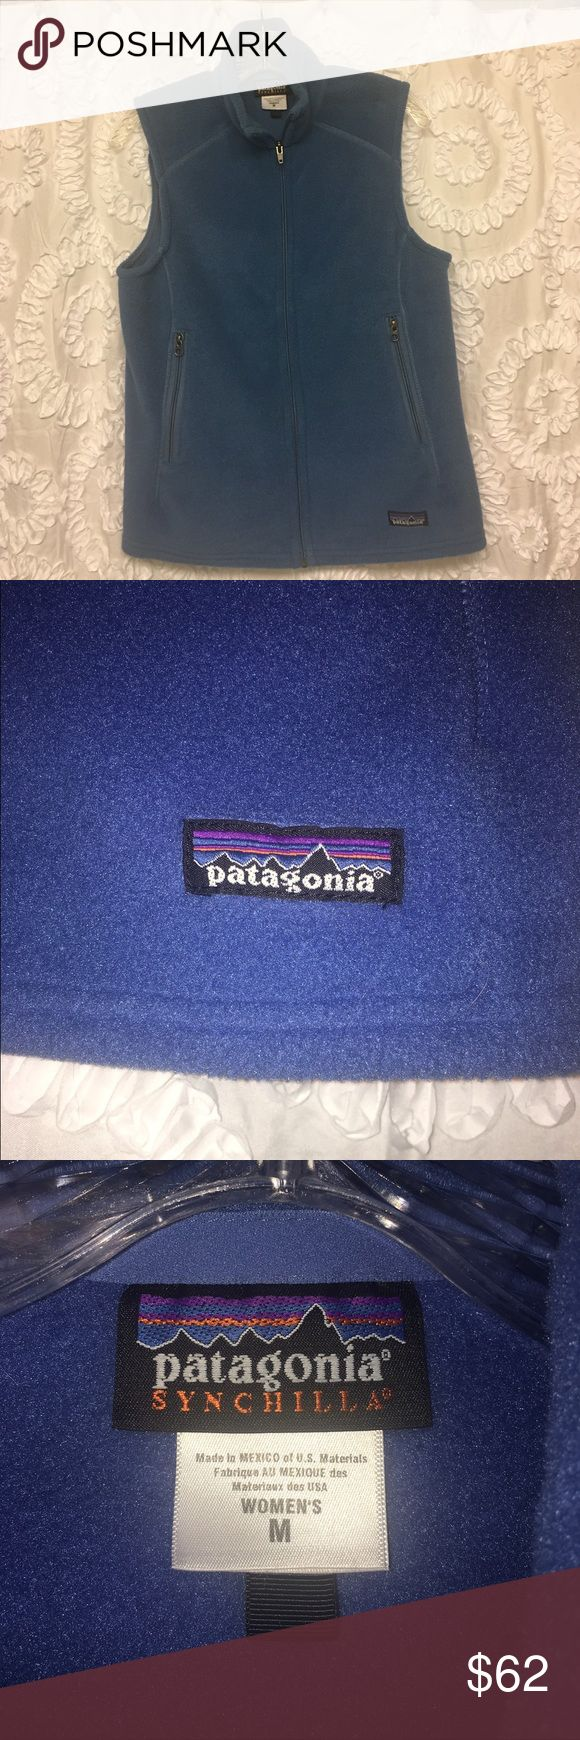 Blue Patagonia Fleece Vest Blue Patagonia fleece vest. Only worn one time and in perfect condition! Women's size medium. Patagonia Jackets & Coats Vests